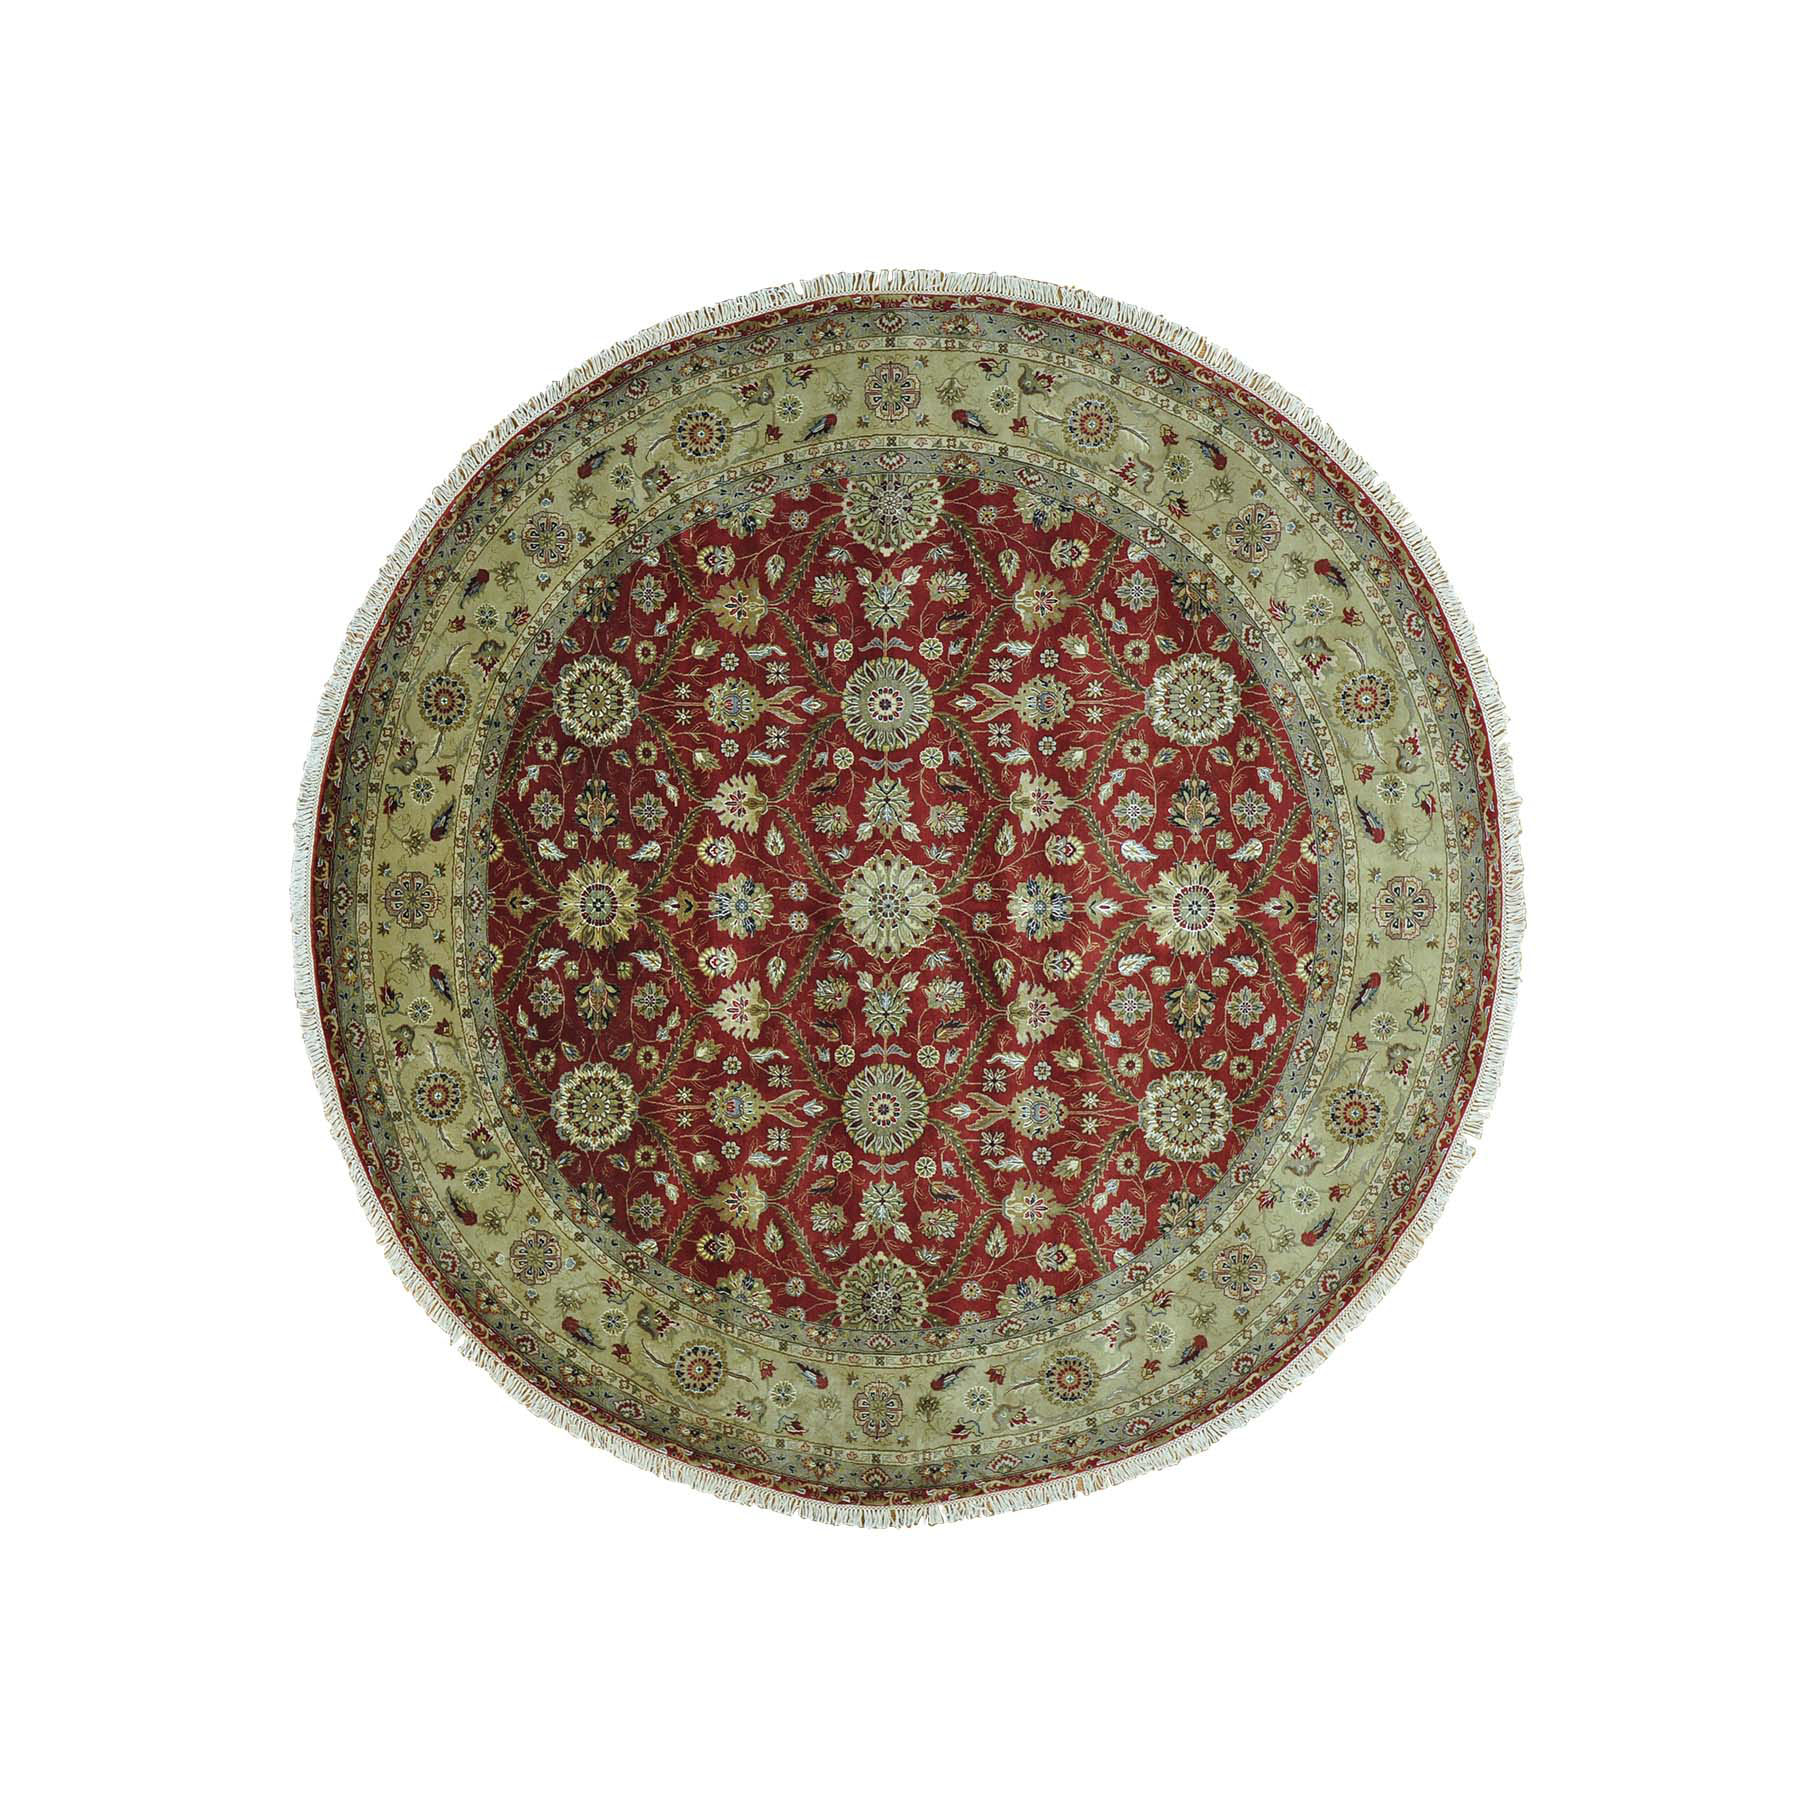 Click For More Images9u0027x9u0027 Hereke Design 300 KPSI Round Wool And Silk Hand  Knotted Rug Sh28352